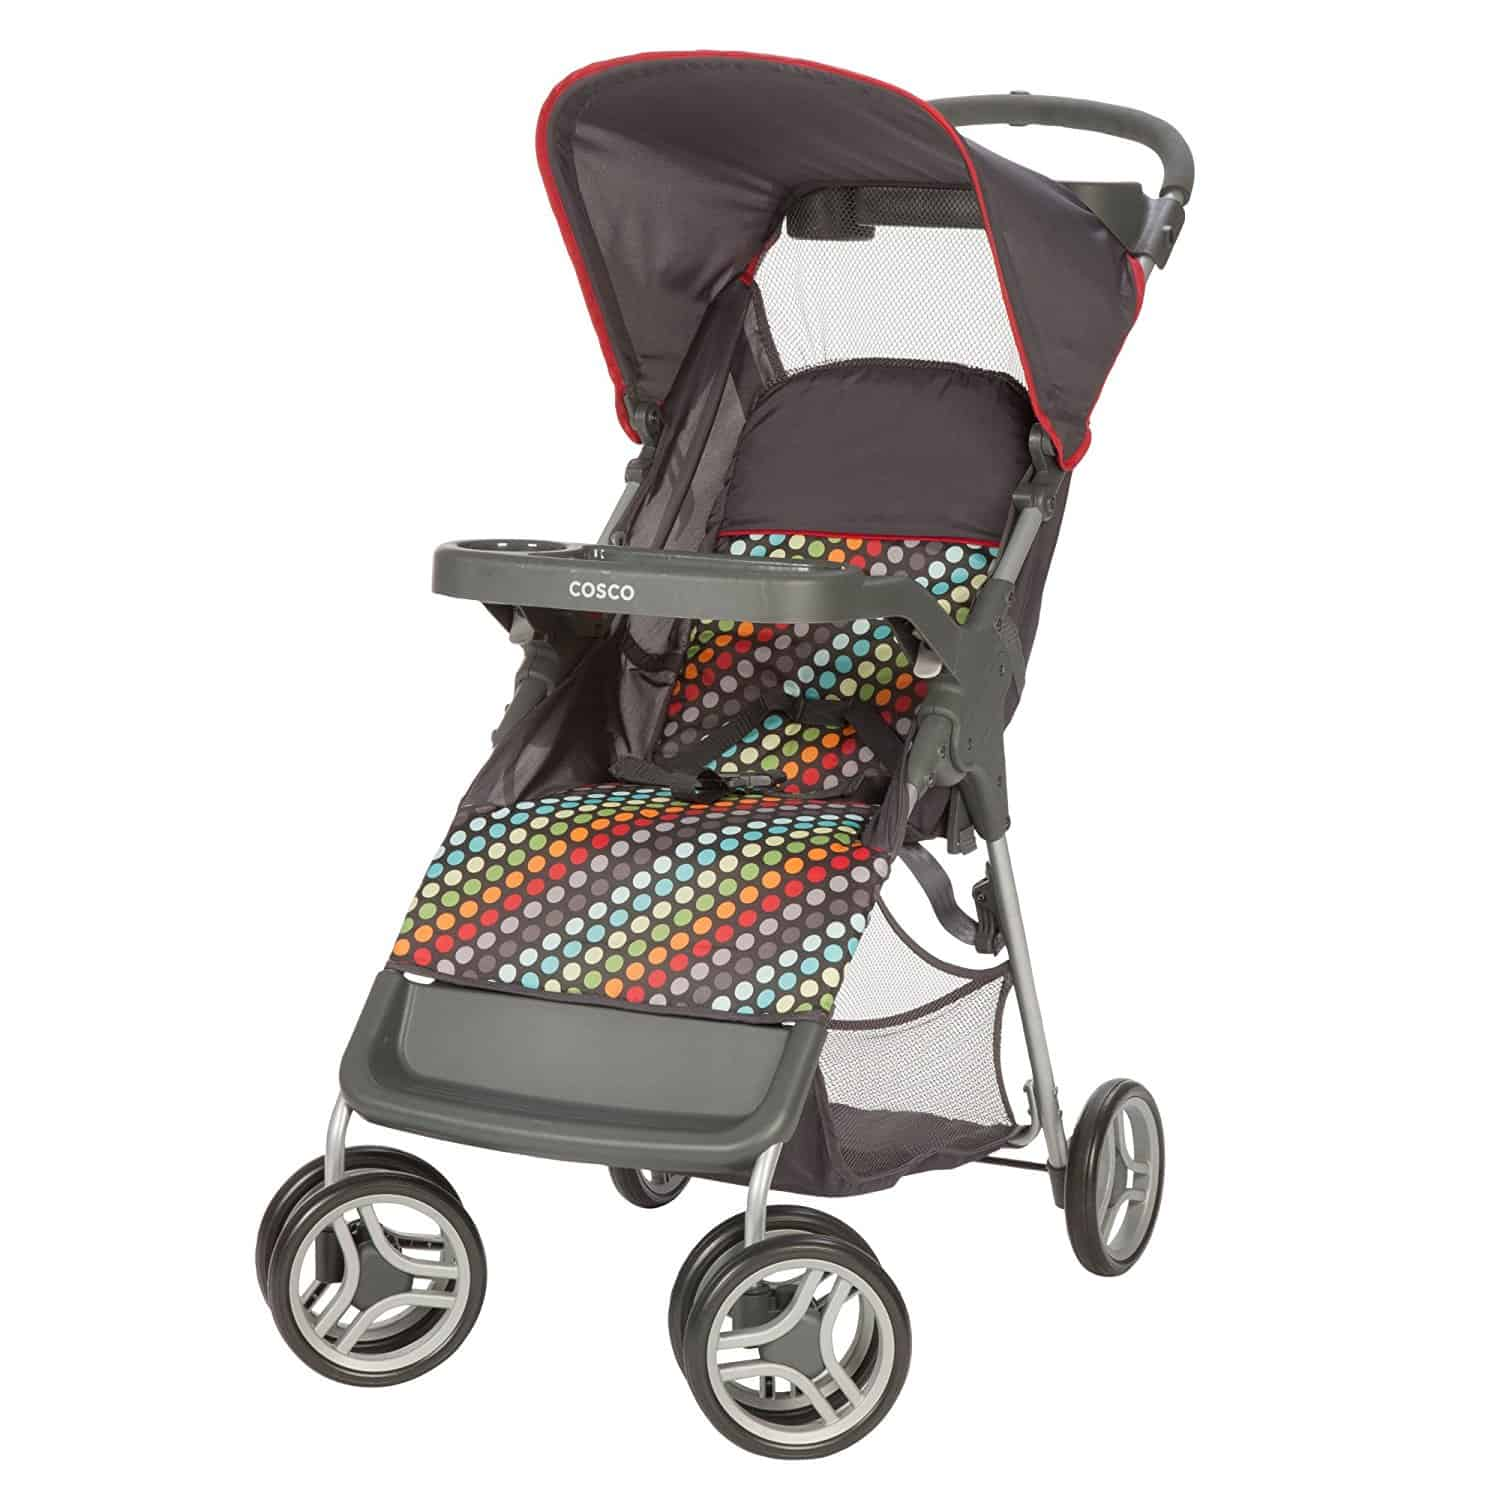 The Mamas&Papas Armadillo is a modern looking lightweight stroller that is designed for busy parents who like to run errands, going to the park, or a shopping mall.